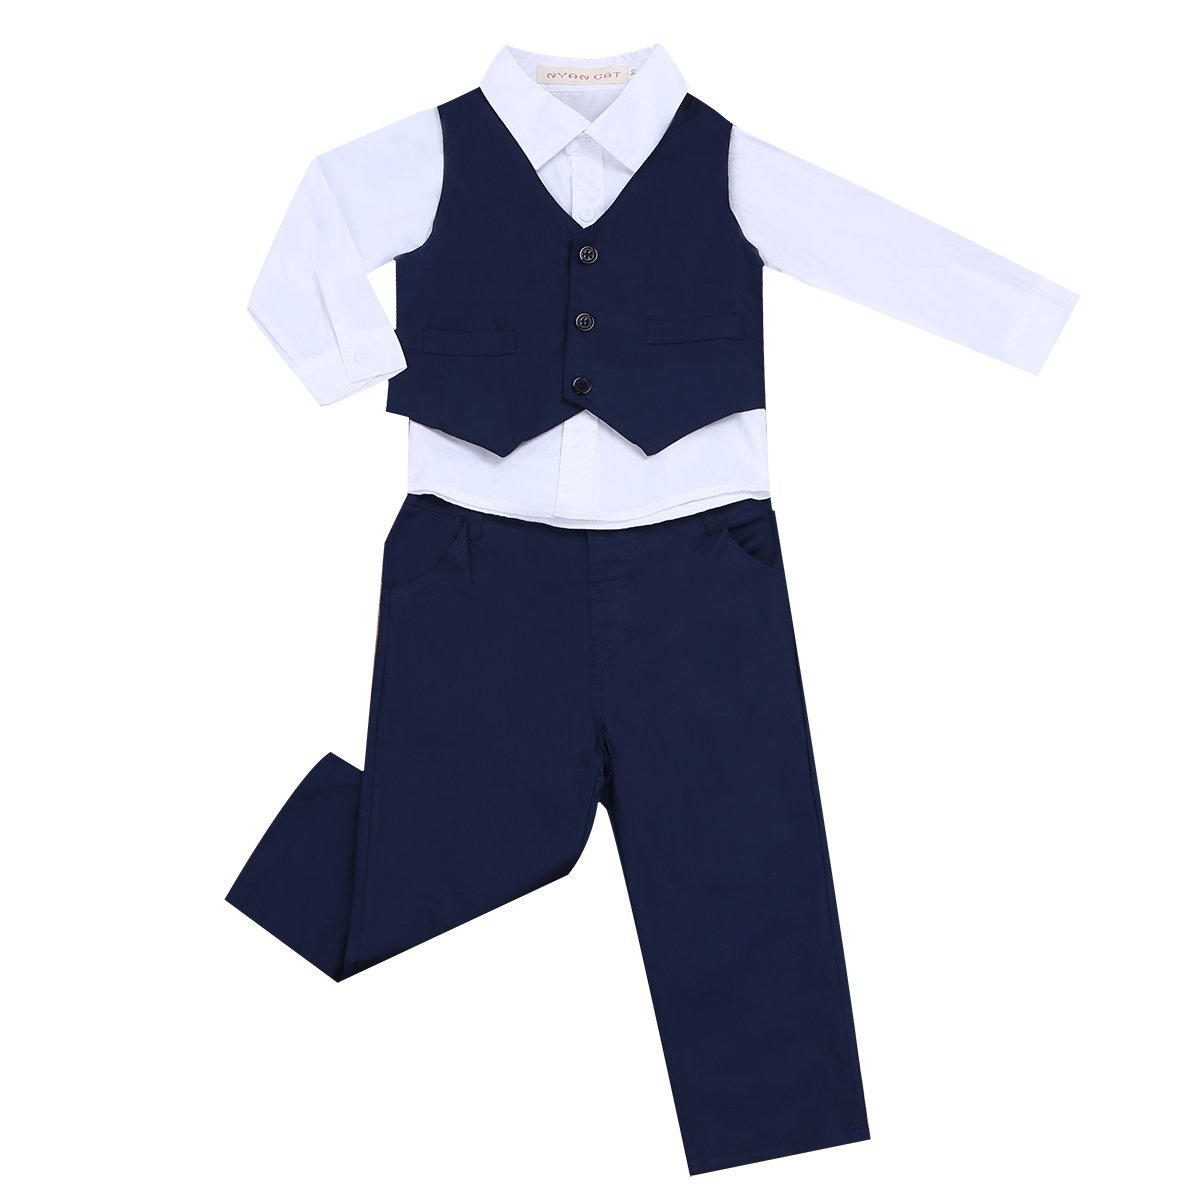 inlzdz Baby Boys Gentleman Tuxedo Suit Wedding Formal Party Outfit White Dress Shirts with Pants Vest Set Navy Blue+White 18-24 Months by inlzdz